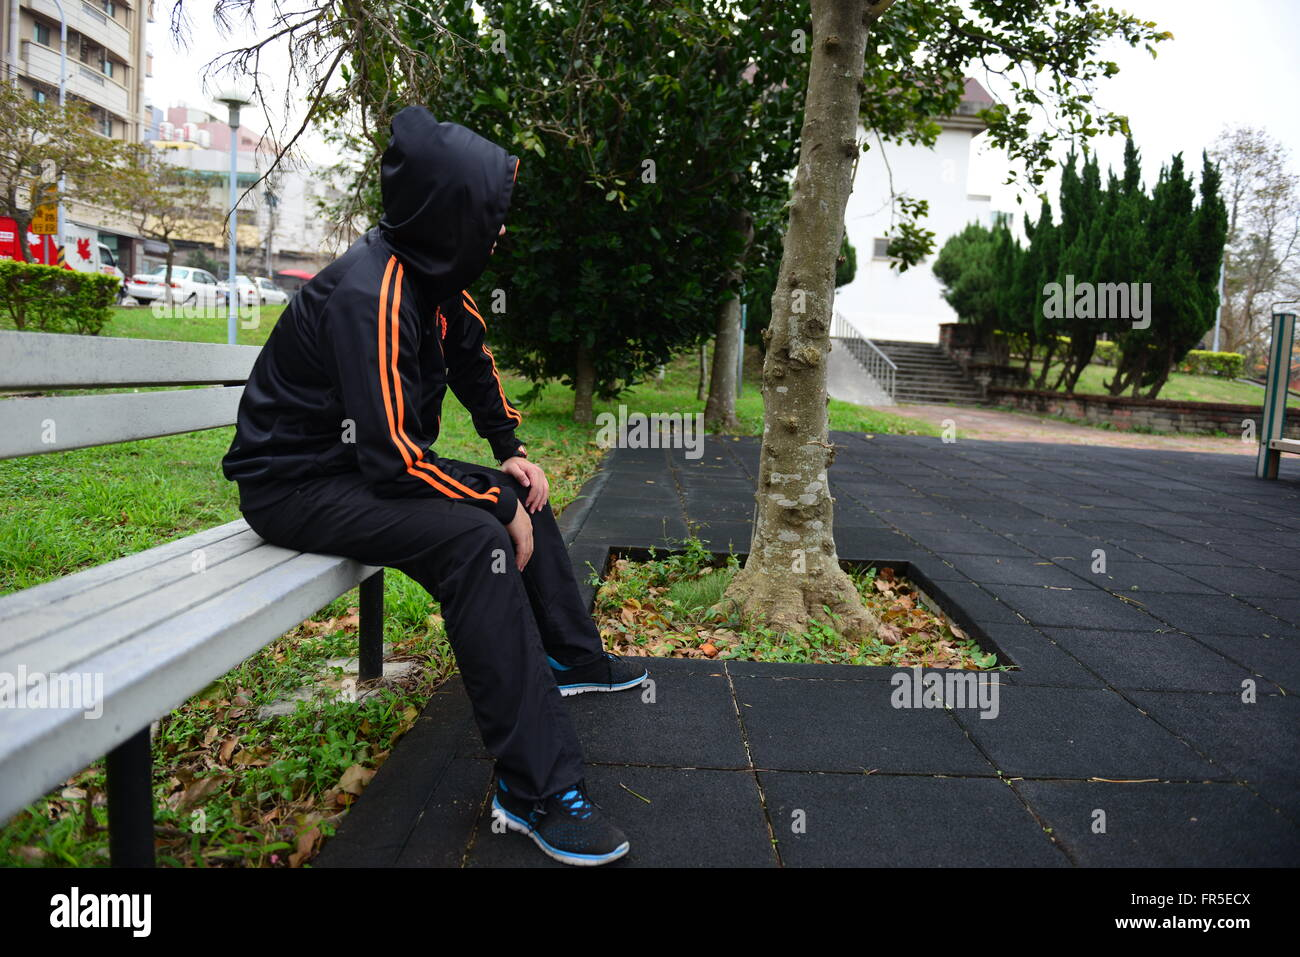 Alone in the park - Stock Image